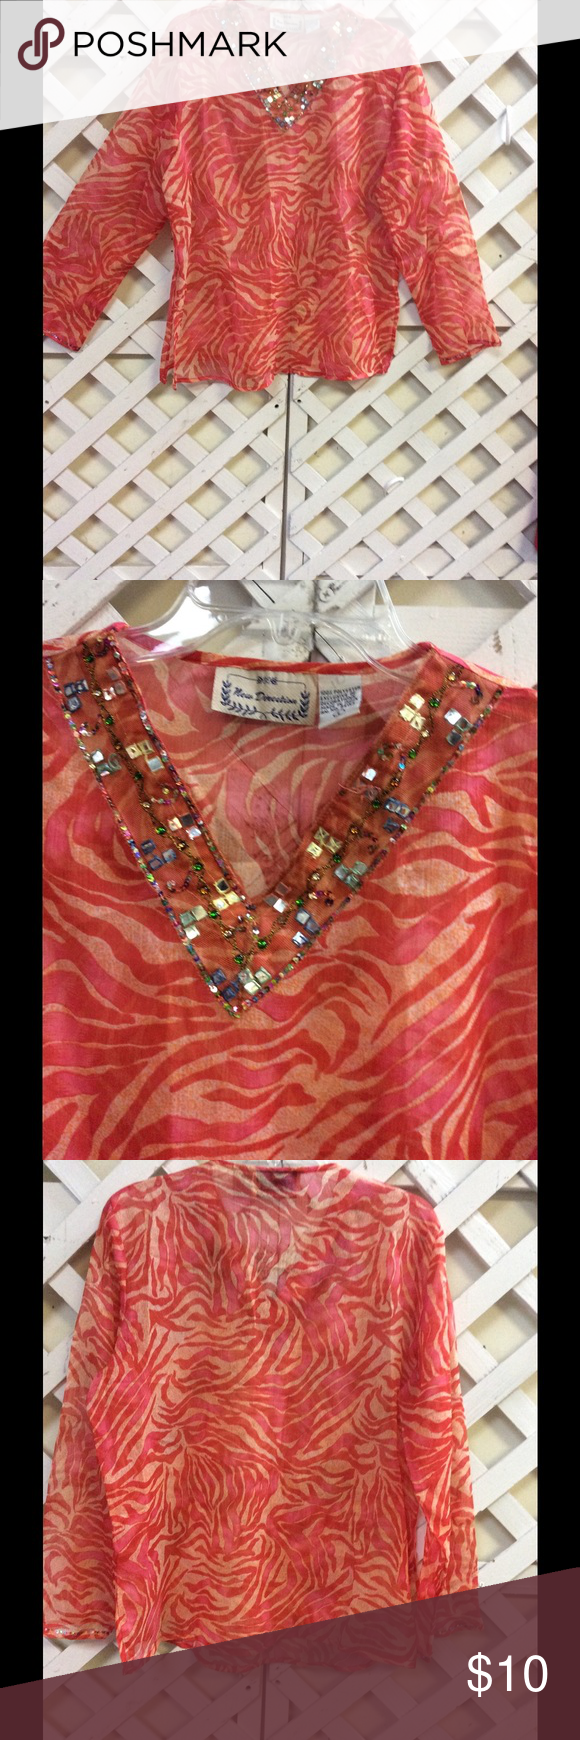 New Direction Sheer Top Sz L Safari Shirt Orange Beautiful sheer top by New Direction.  Gorgeous pattern .Very light. Size Large.Jewel embellished around neckline and sleeves. new directions Tops Blouses